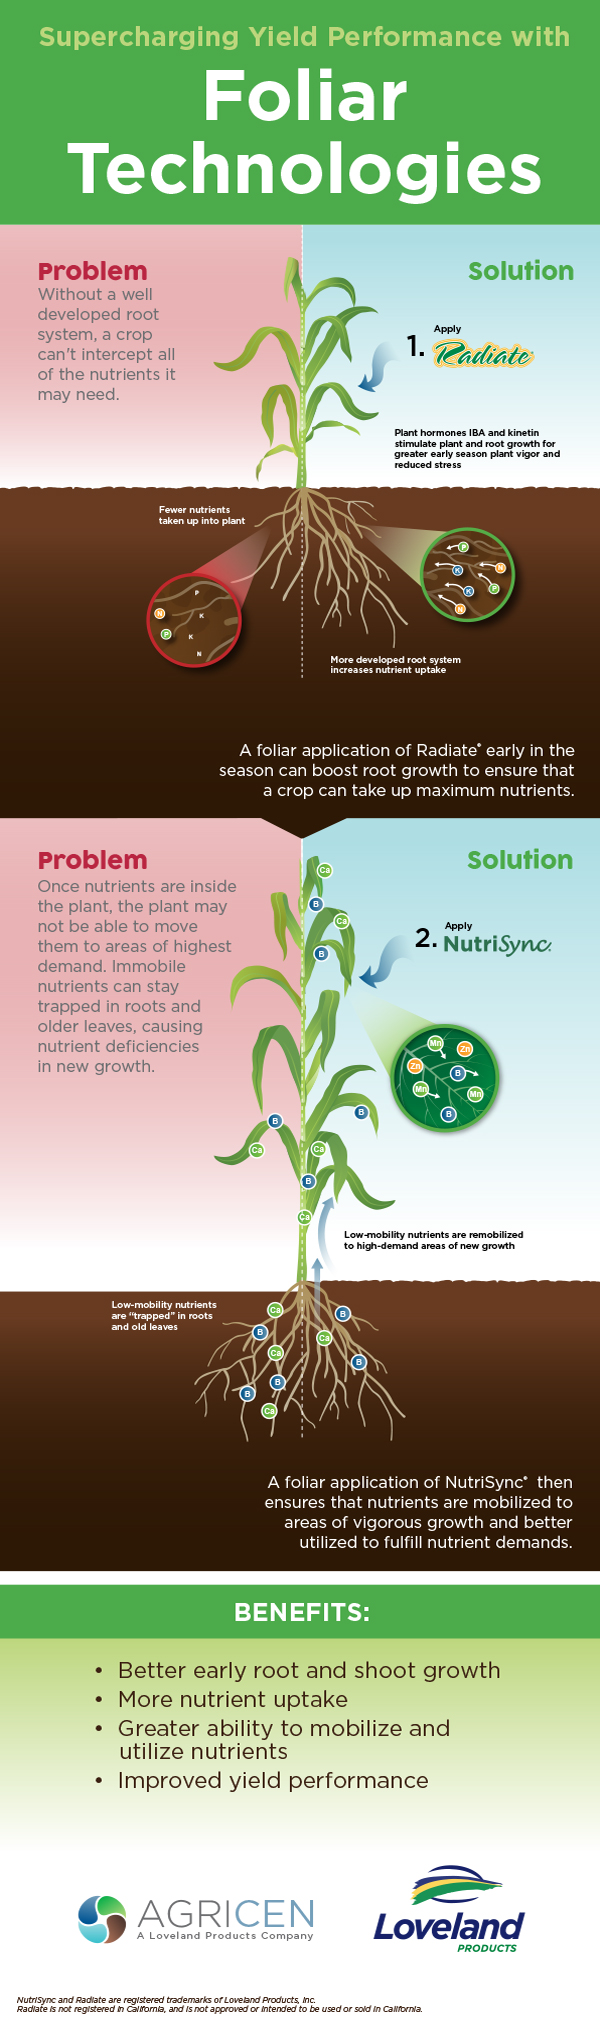 04-15-foliar-technologies-infographic-v4